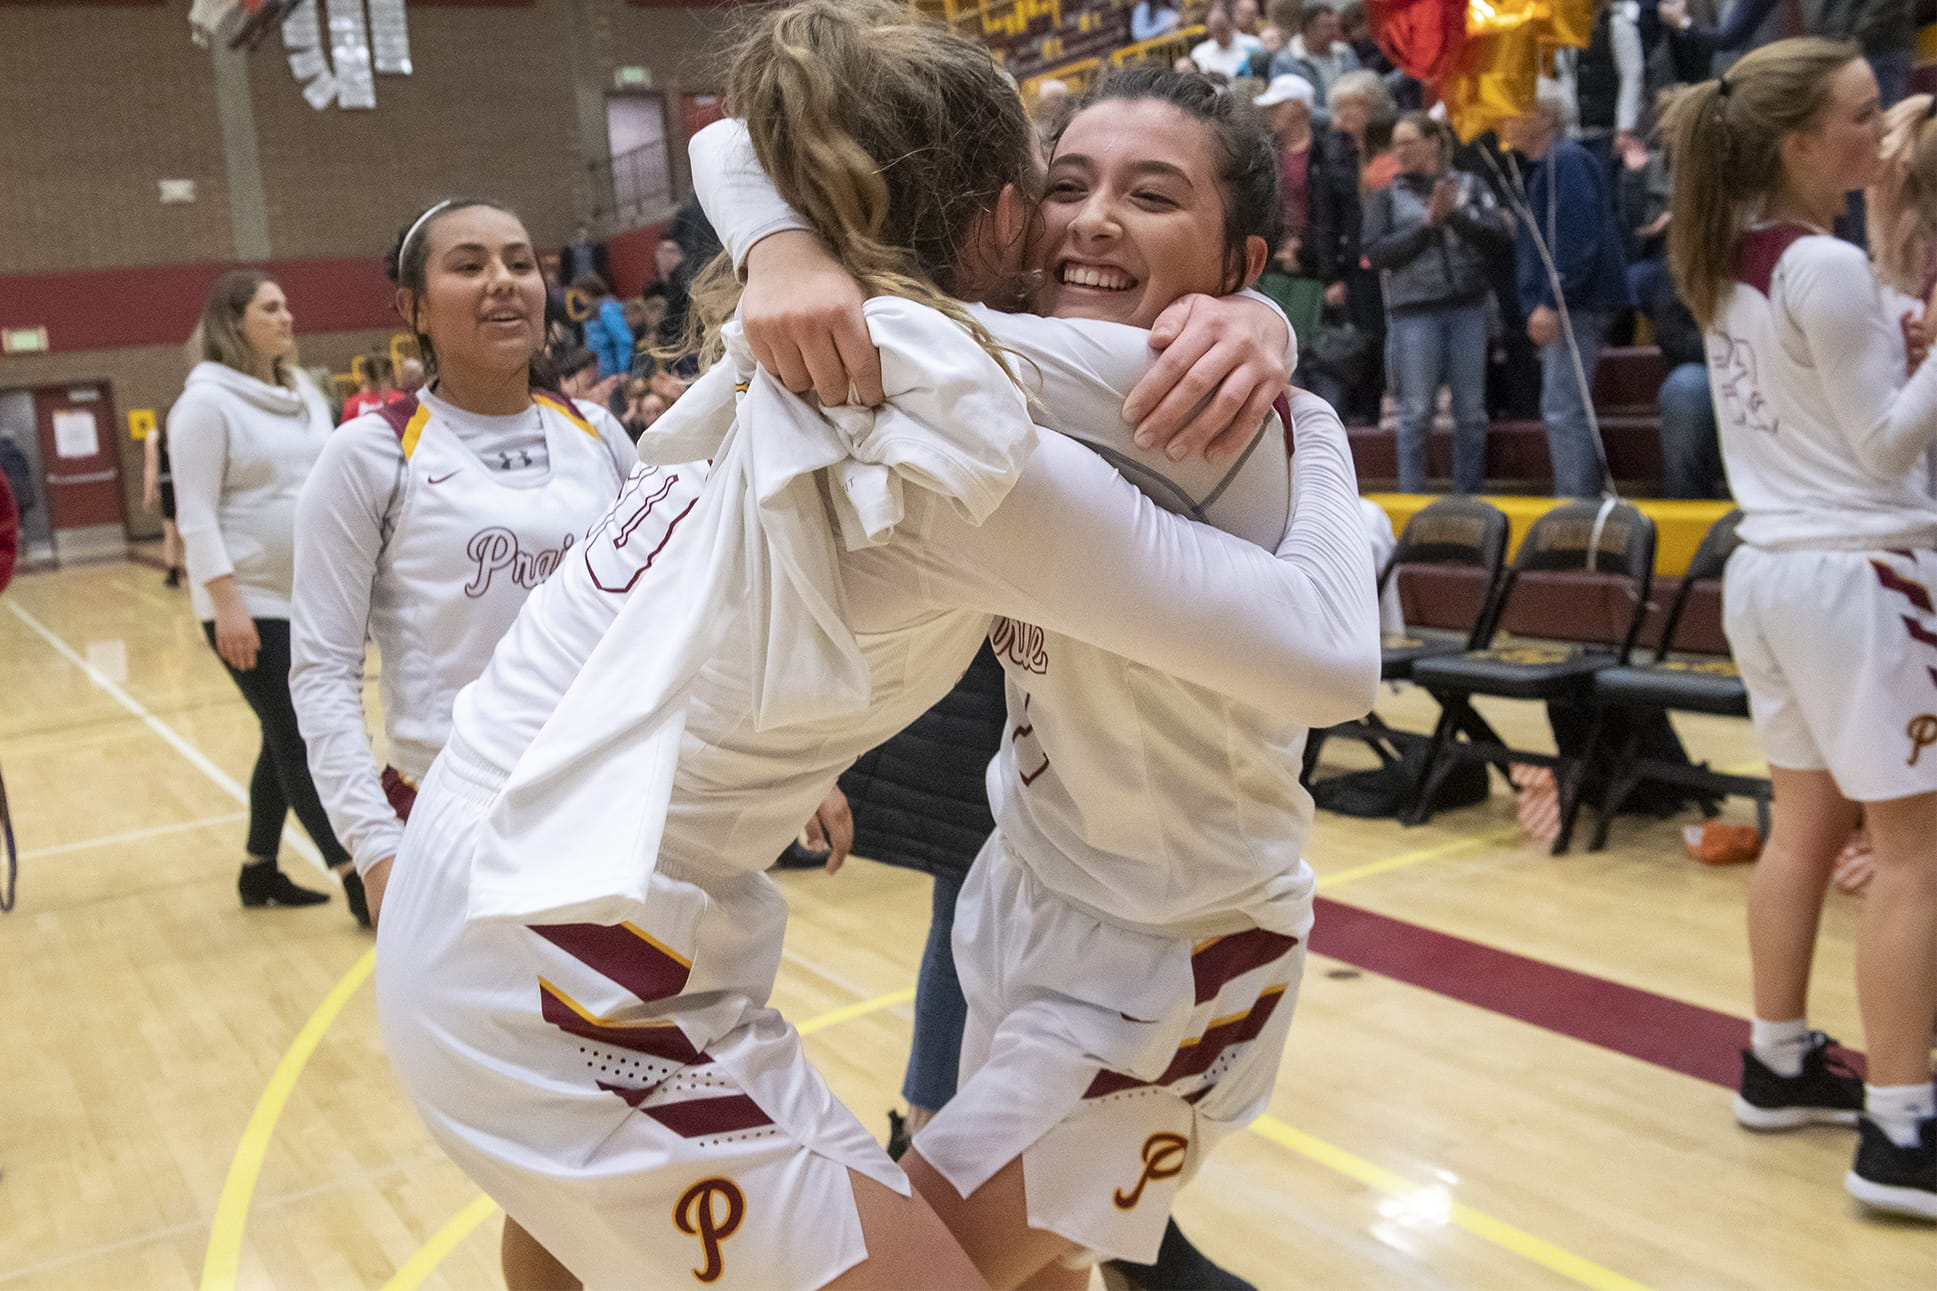 Prairie's Claire Heitschmidt, left, and Dayna Vera celebrate their win over Yelm Prairie High School on Friday night, Feb. 14, 2020. (Nathan Howard/The Columbian)